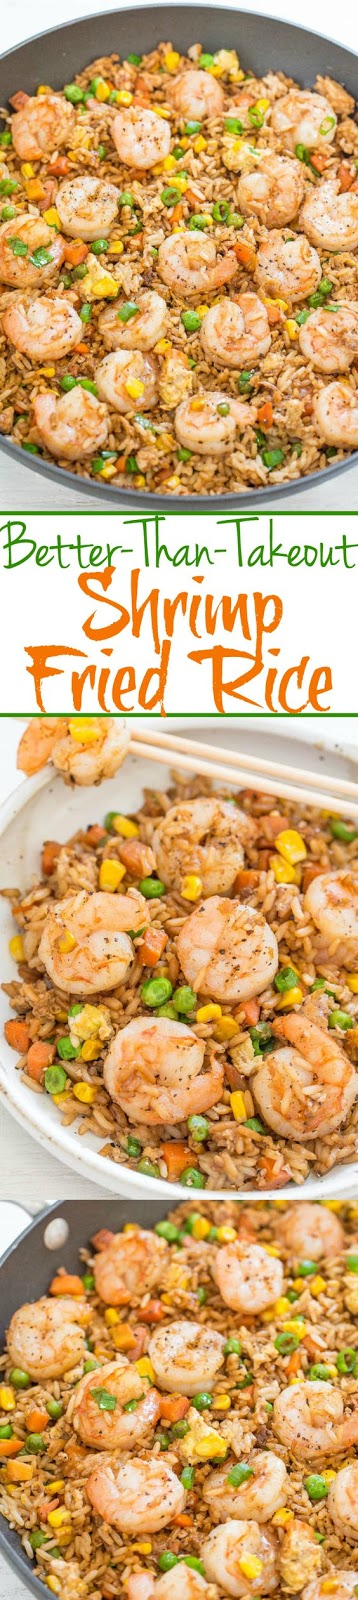 This is an easy, one-skillet recipe that's ready in 20 minutes and tastes better than takeout; it's healthier and not greasy. To save time if you don't have leftover rice on hand or don't want to cook a batch, use two pouches of ready-to-serve rice. The shrimp is tender and juicy. I use fresh shrimp but you can use frozen shrimp that's already been cooked. There's garlic, ginger, green onions, sesame oil, and soy sauce for layers of flavor while peas, carrots, corn, and bits of egg add texture.